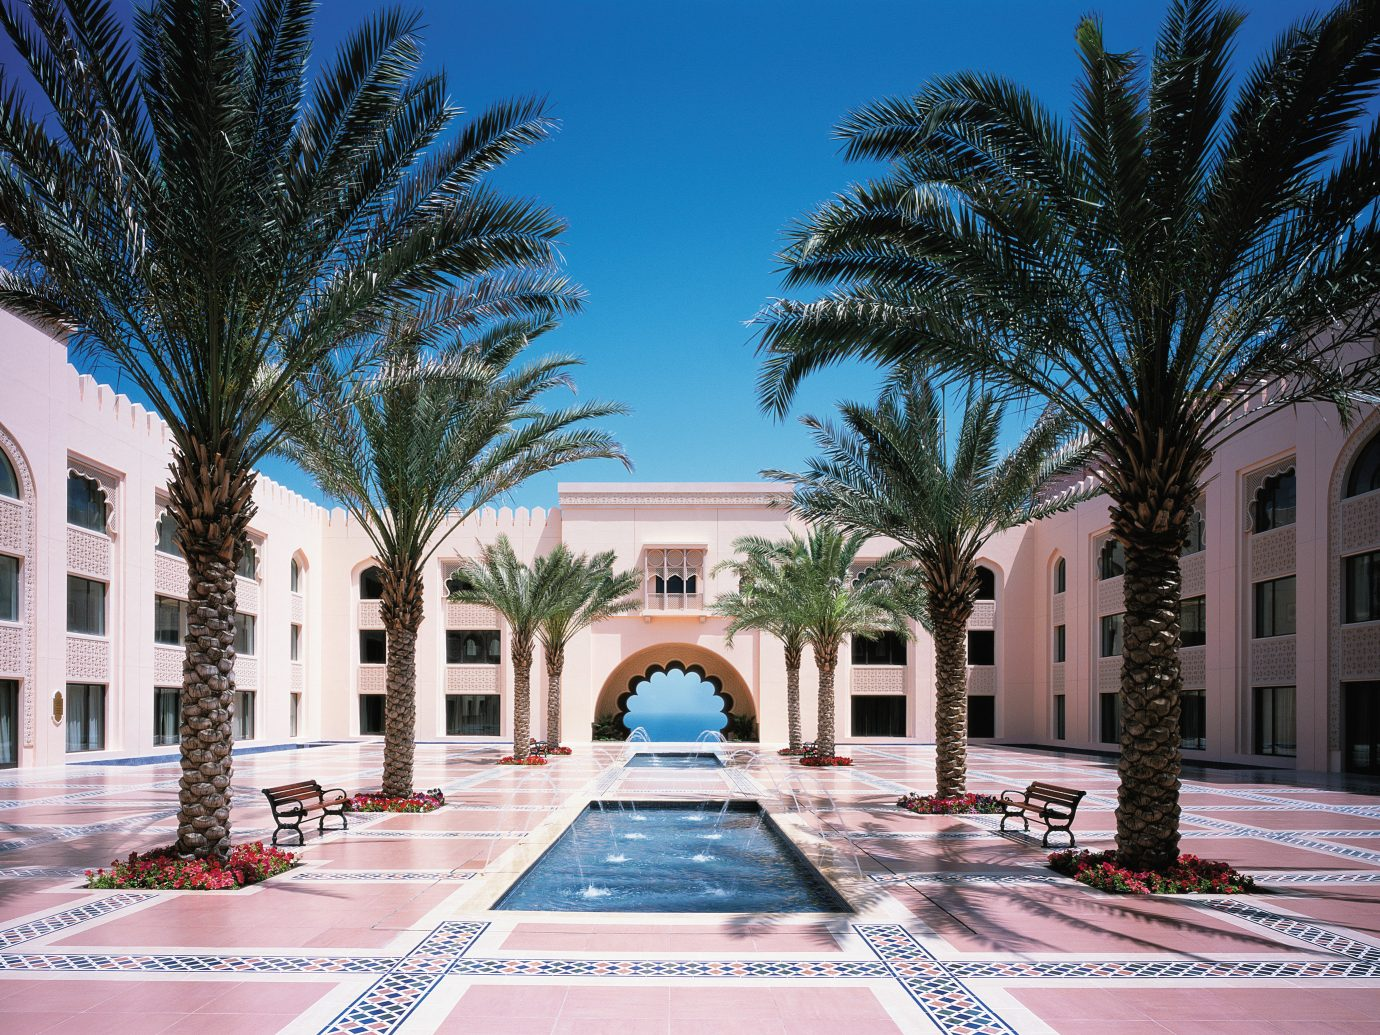 Travel Tips tree outdoor plaza property landmark building estate Architecture palace vacation Courtyard condominium Resort mansion home town square Downtown facade swimming pool plant square colonnade